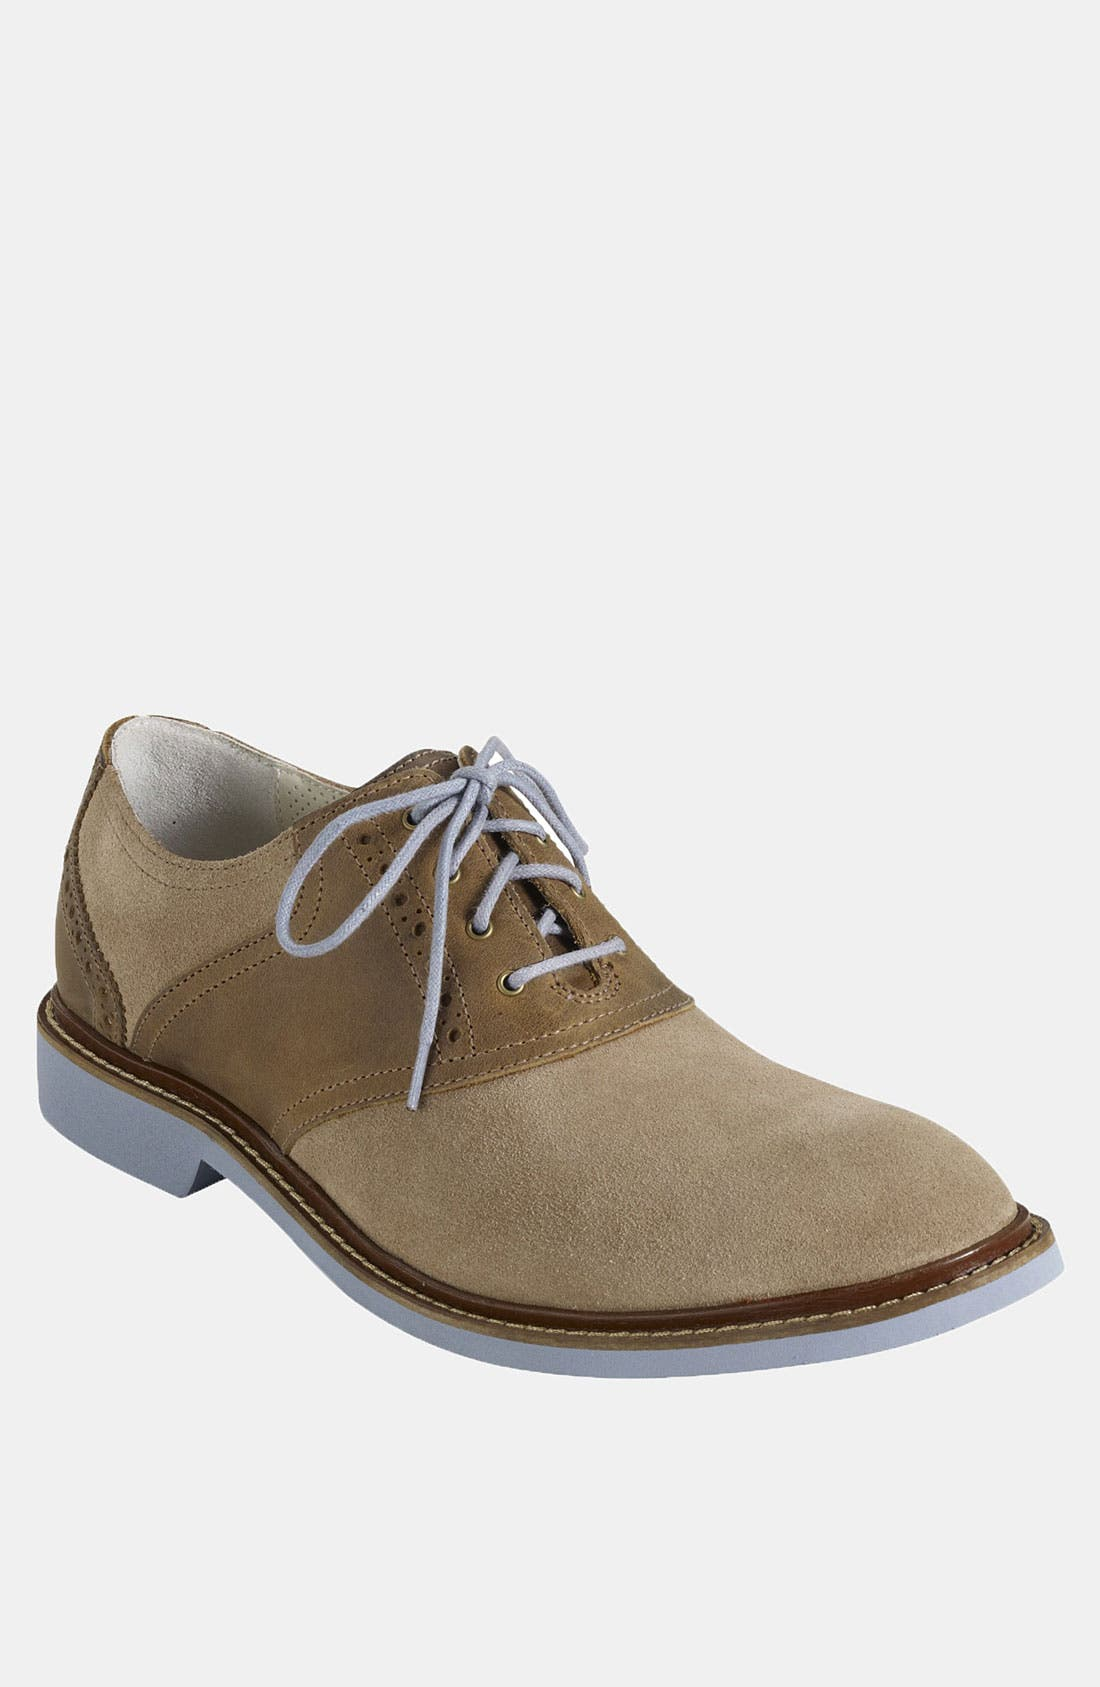 Main Image - Cole Haan 'Air Franklin' Oxford